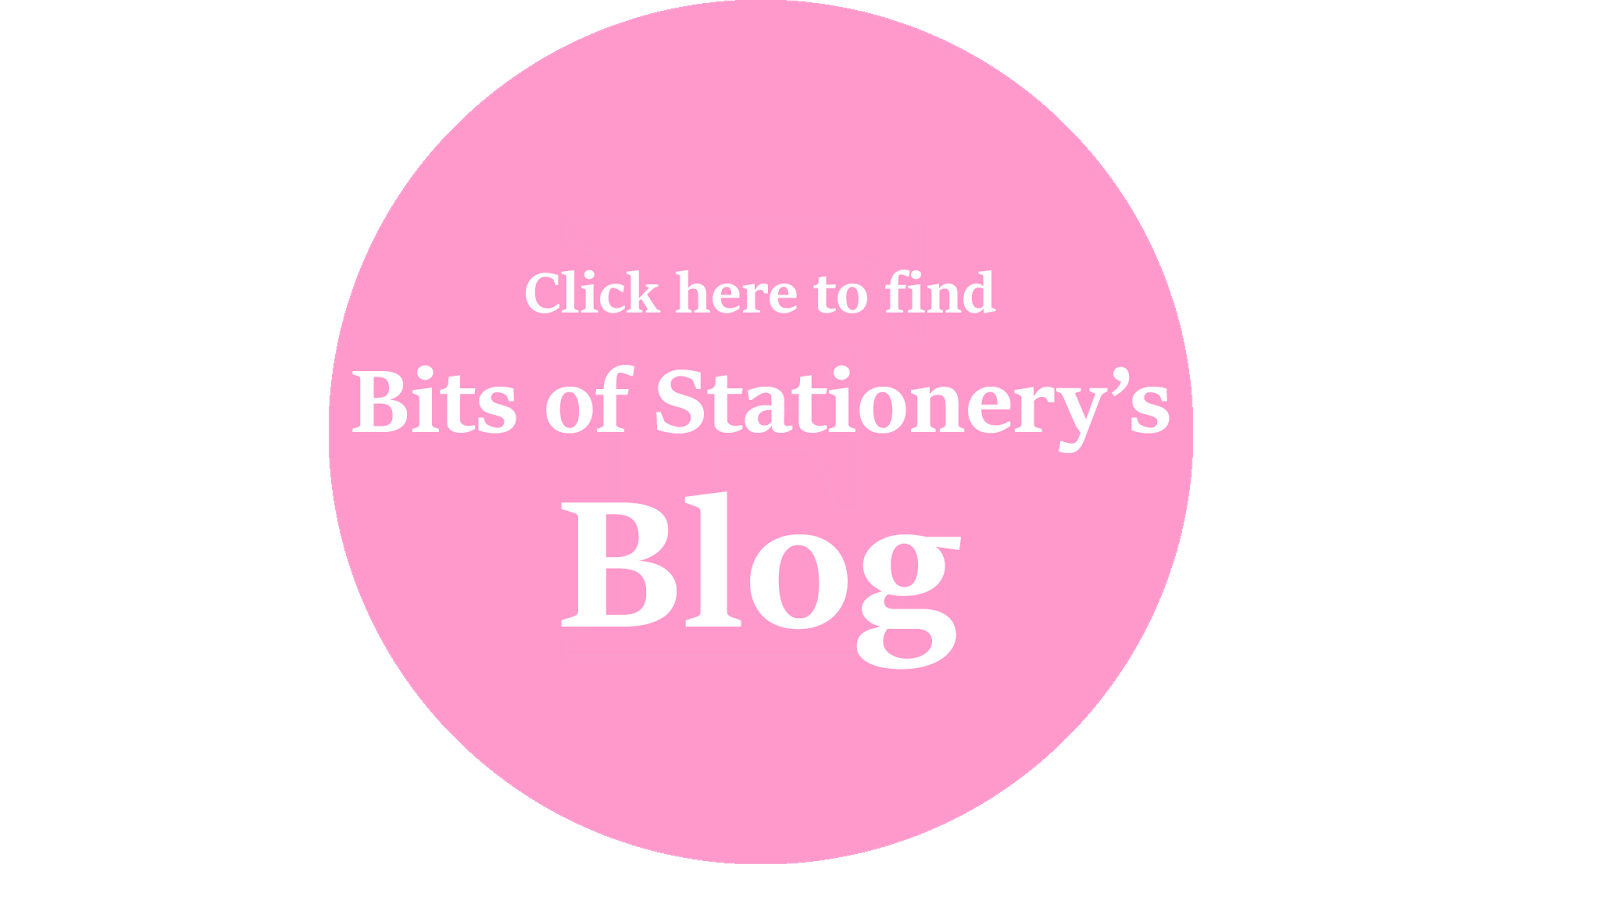 Find Bits of Stationery